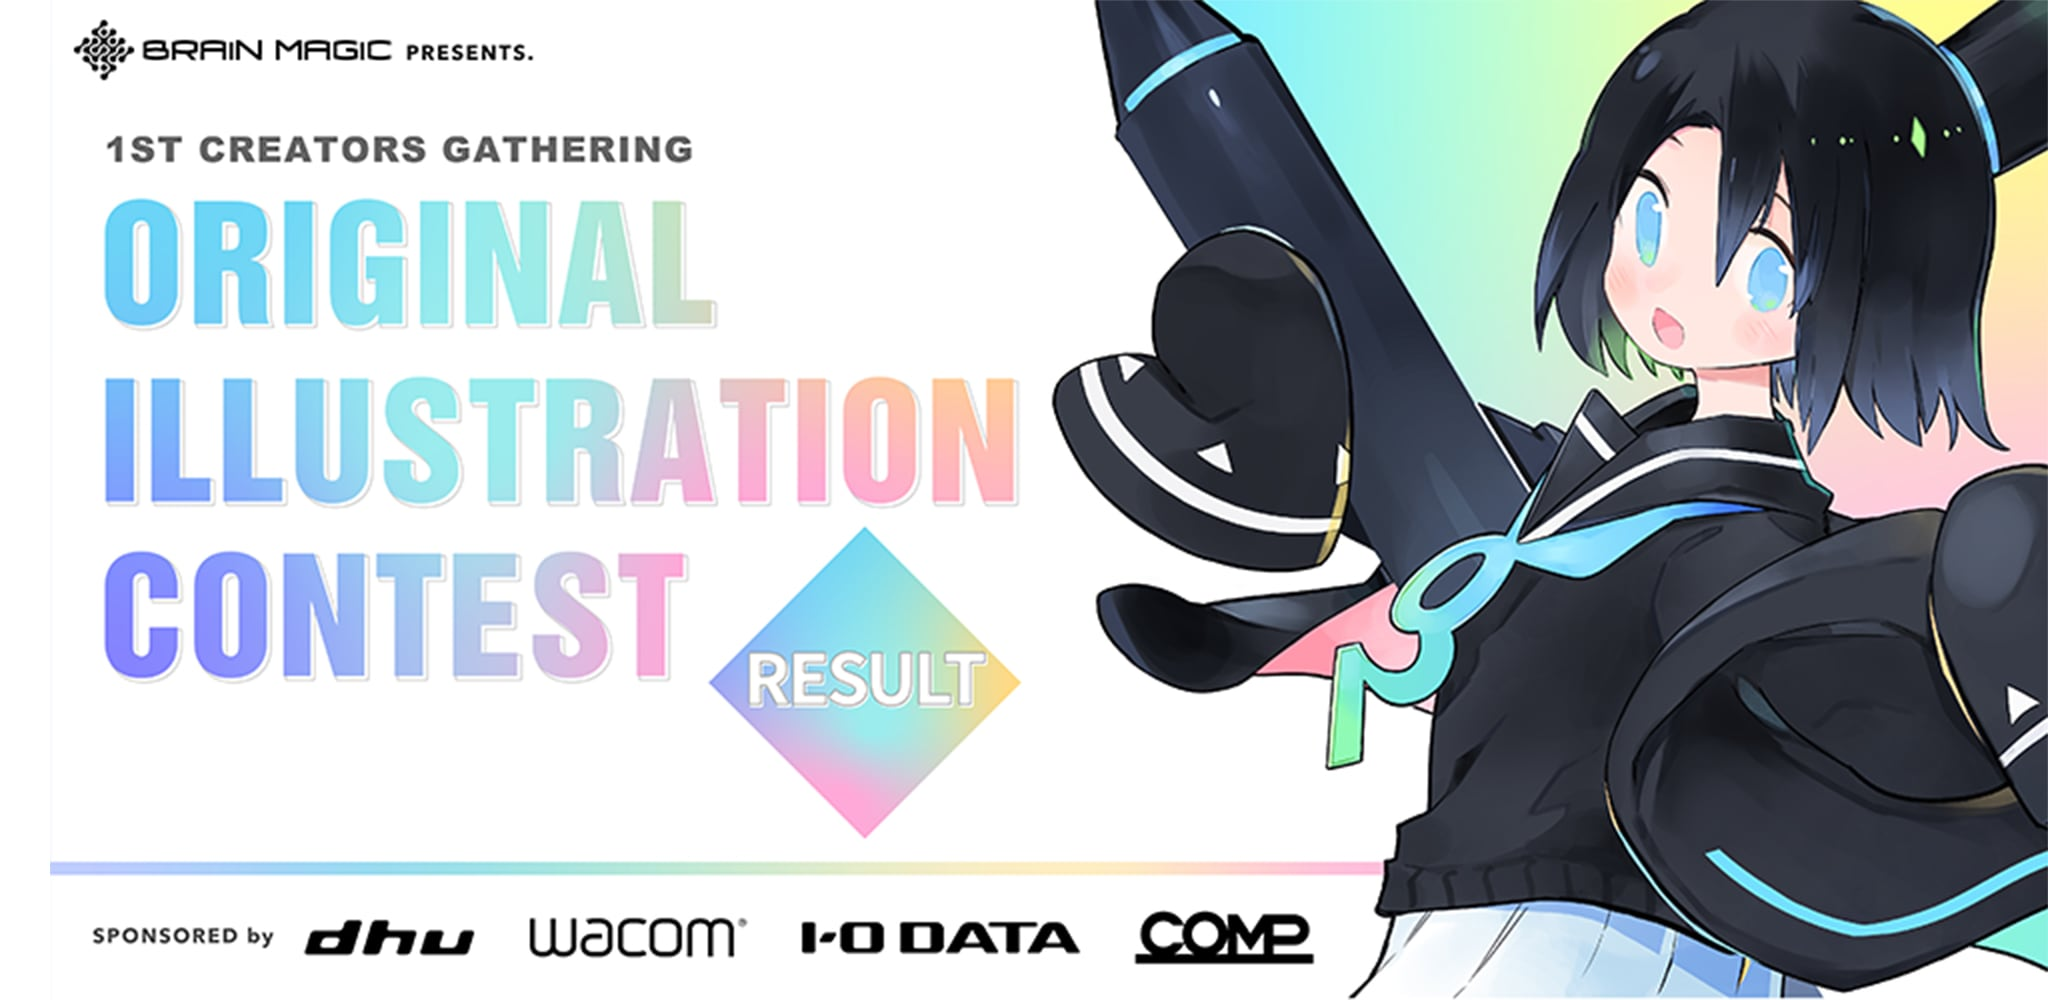 1st Creators Gathering Original Illustration Contest Results | Contest - ART street by MediBang